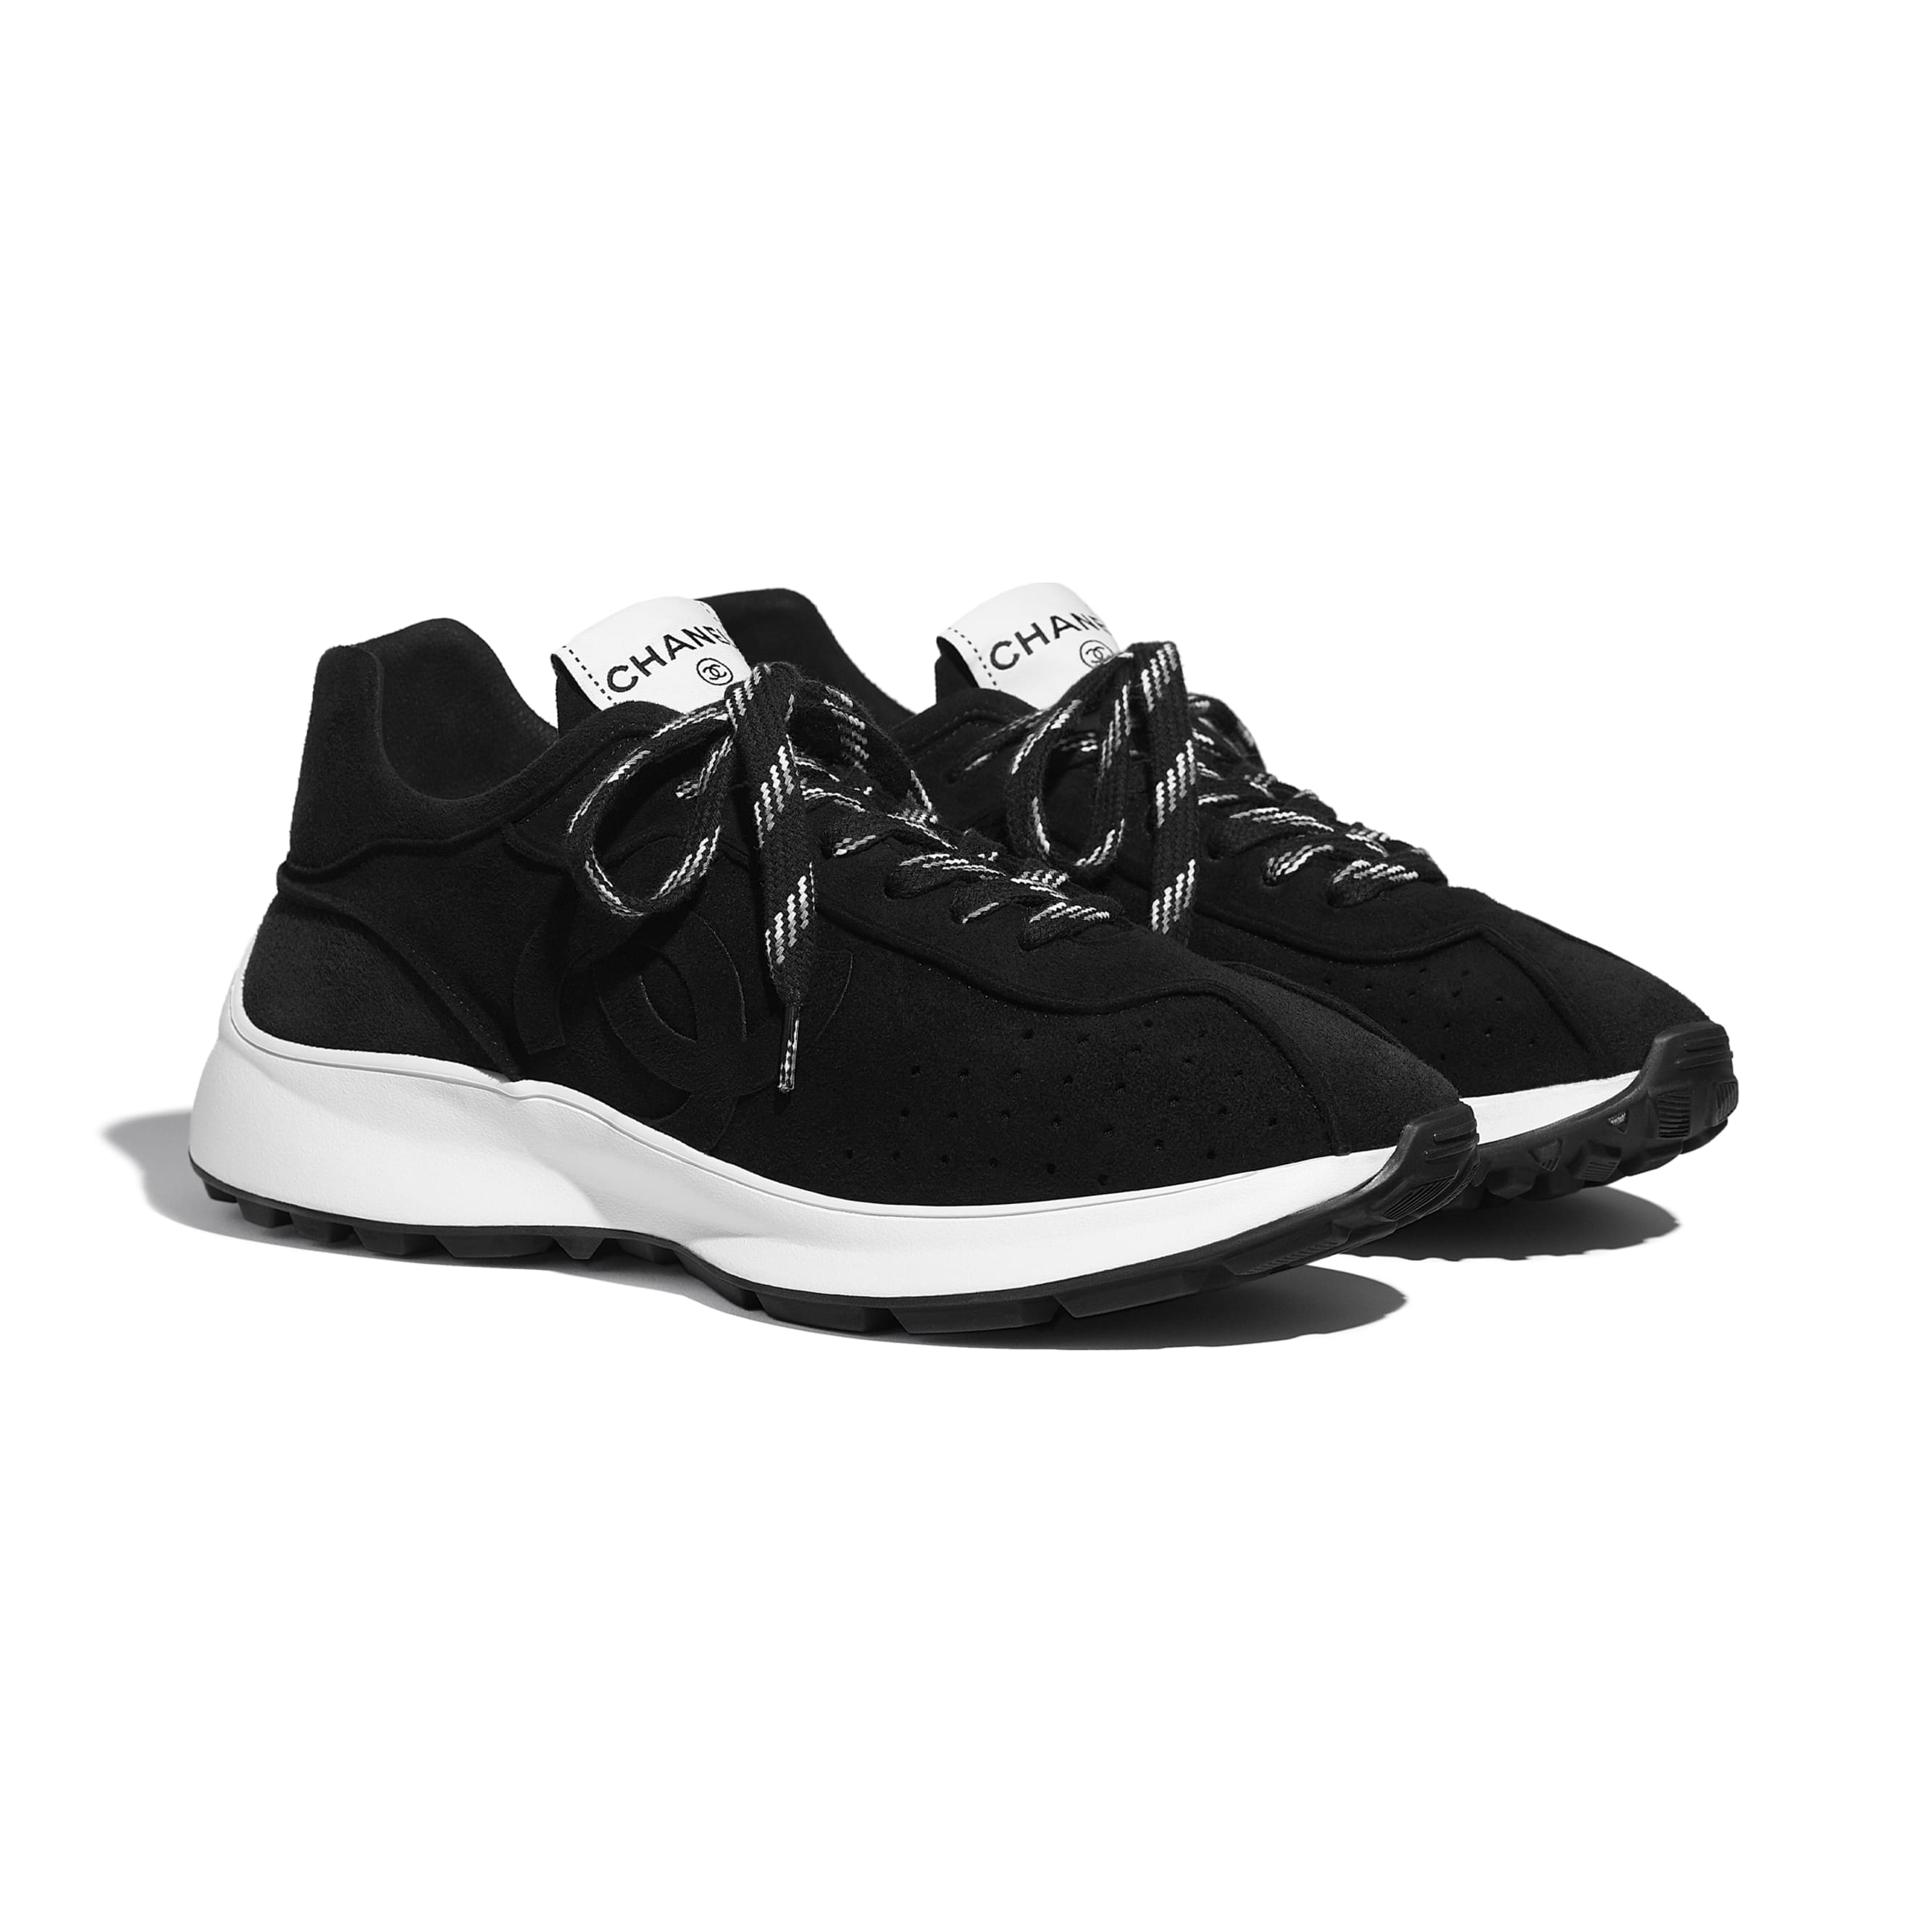 Trainers - Black - Suede Goatskin - CHANEL - Alternative view - see standard sized version